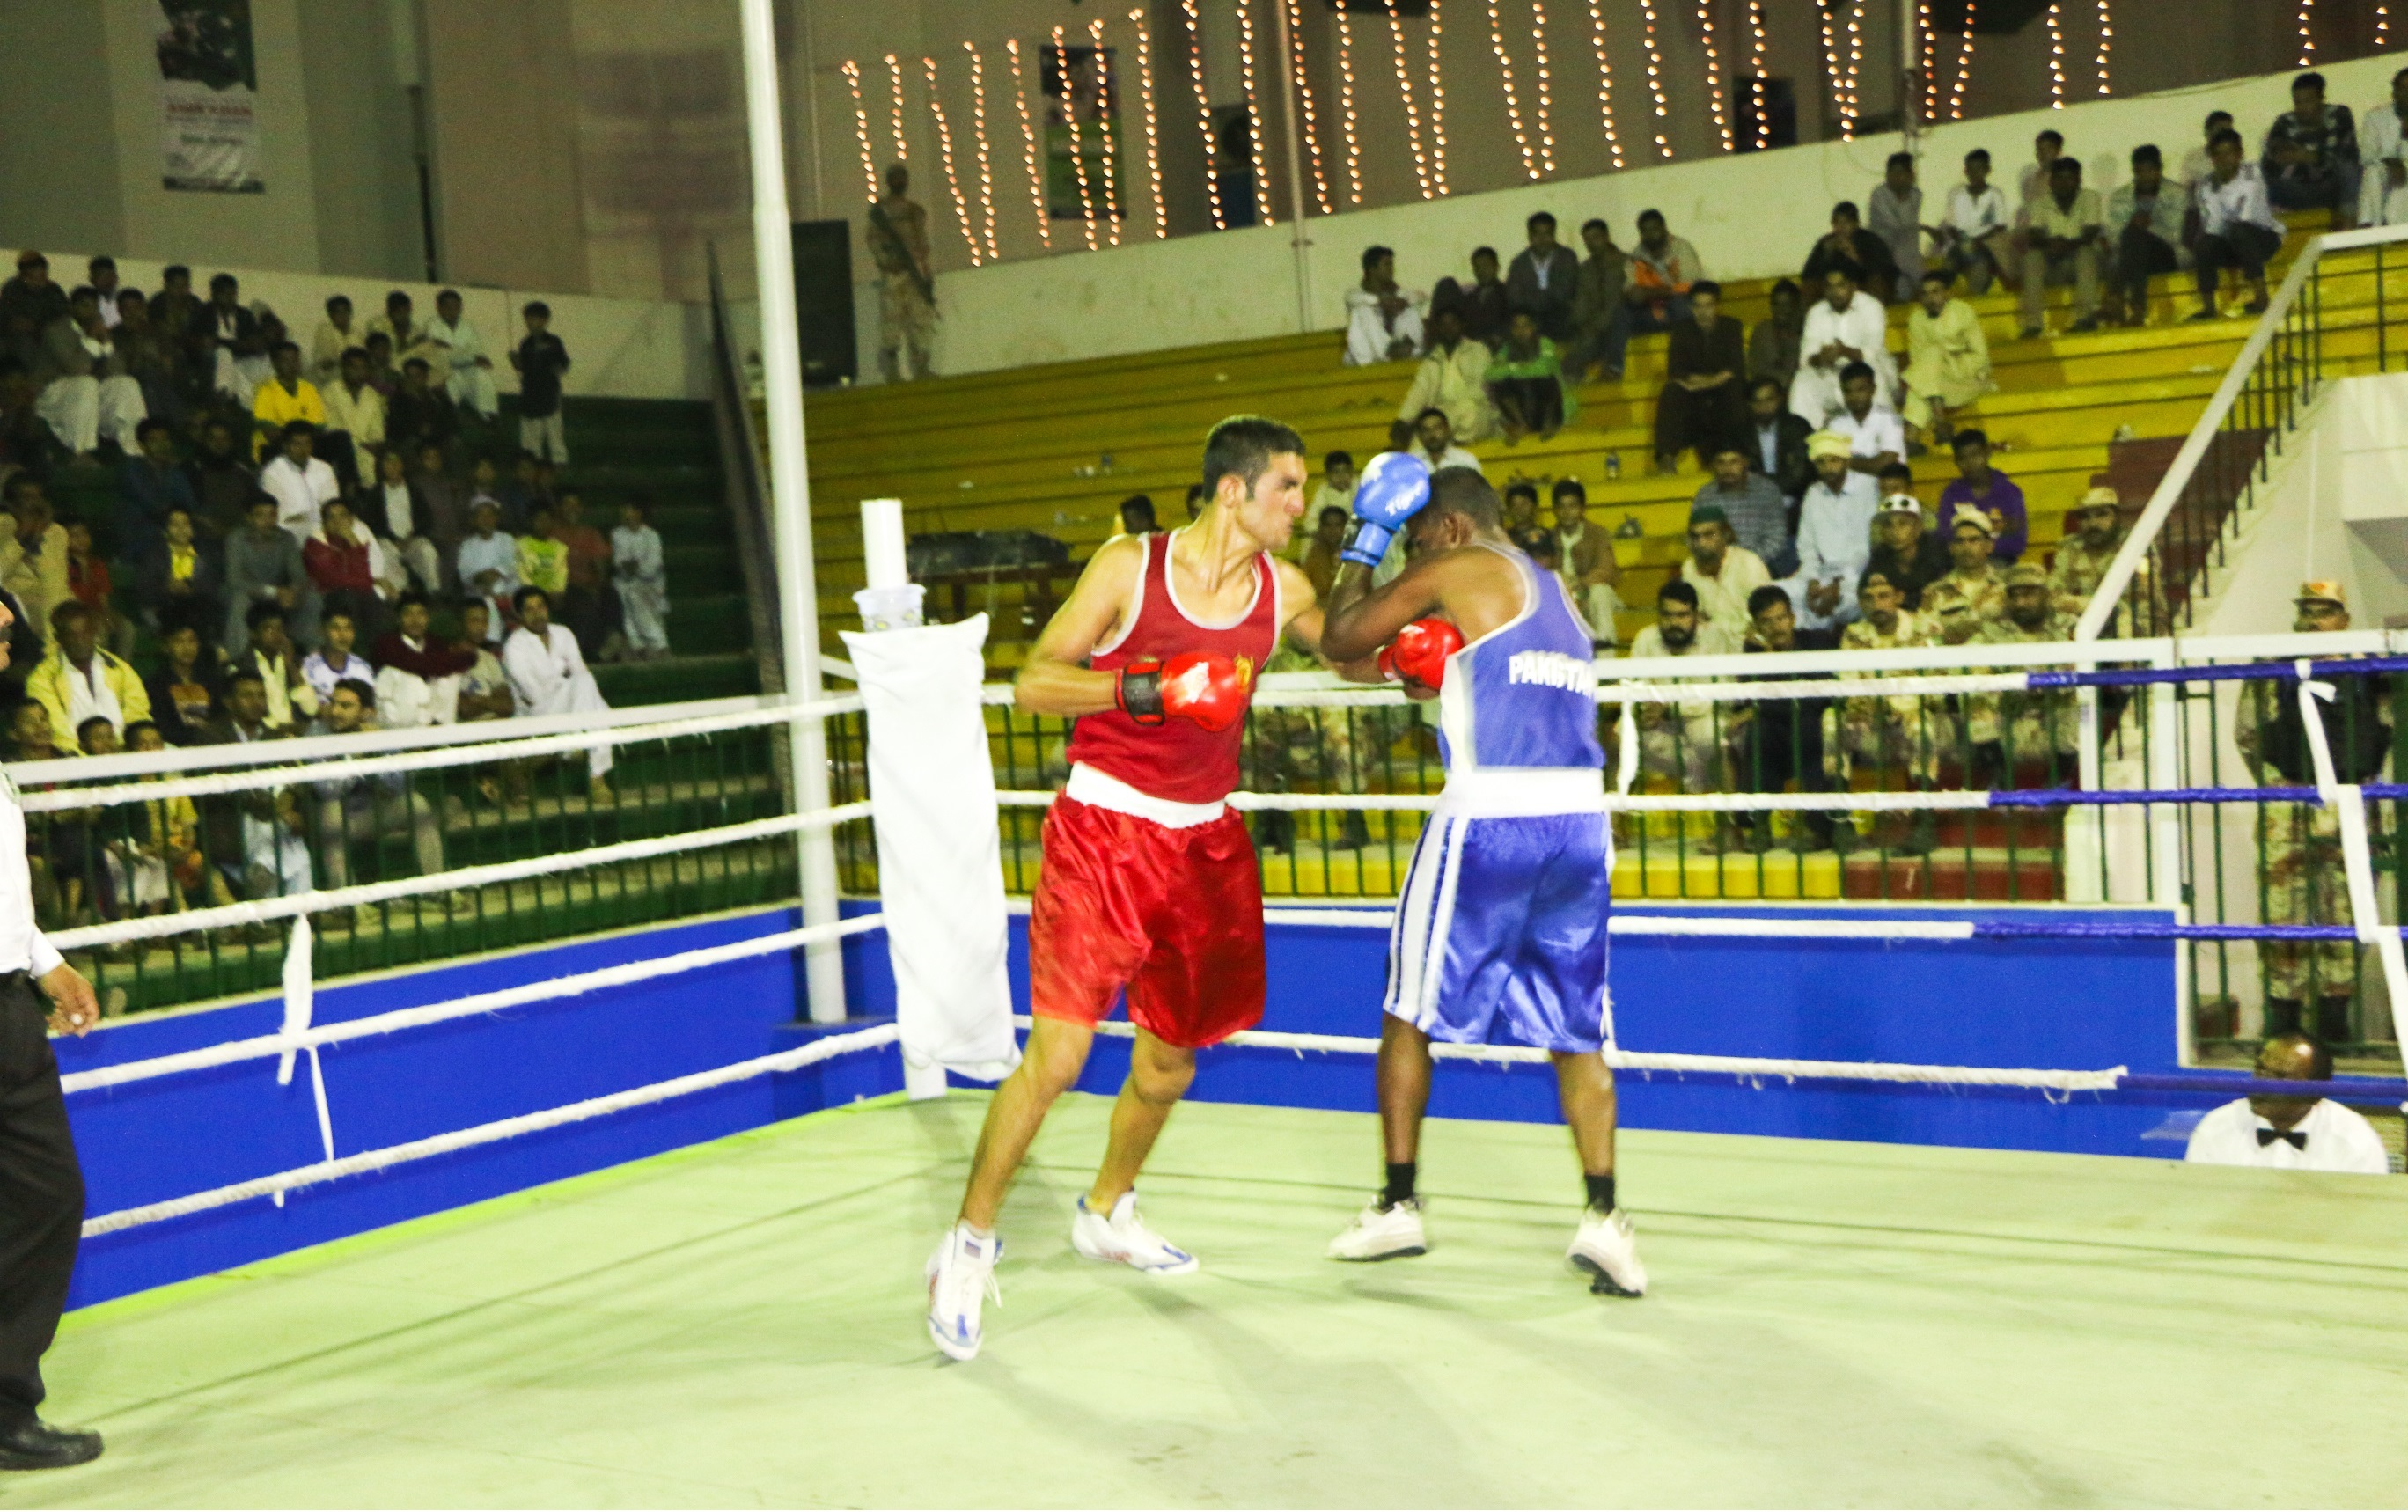 GB boxers through to final in 56 and 91 kg categories